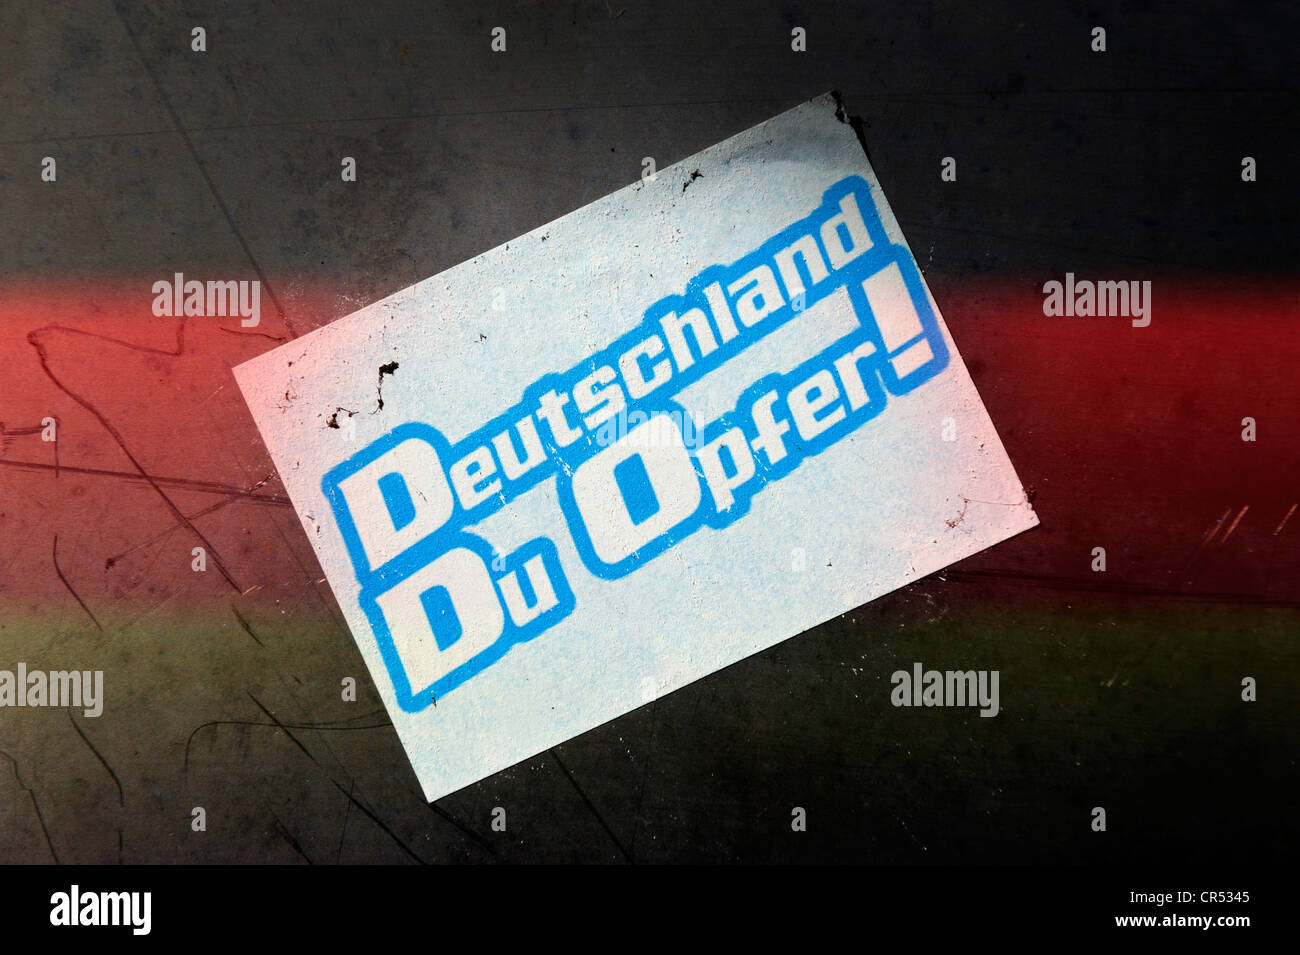 Sticker on a wall, 'Deutschland, Du Opfer!', German for 'Germany, you are a victim' - Stock Image